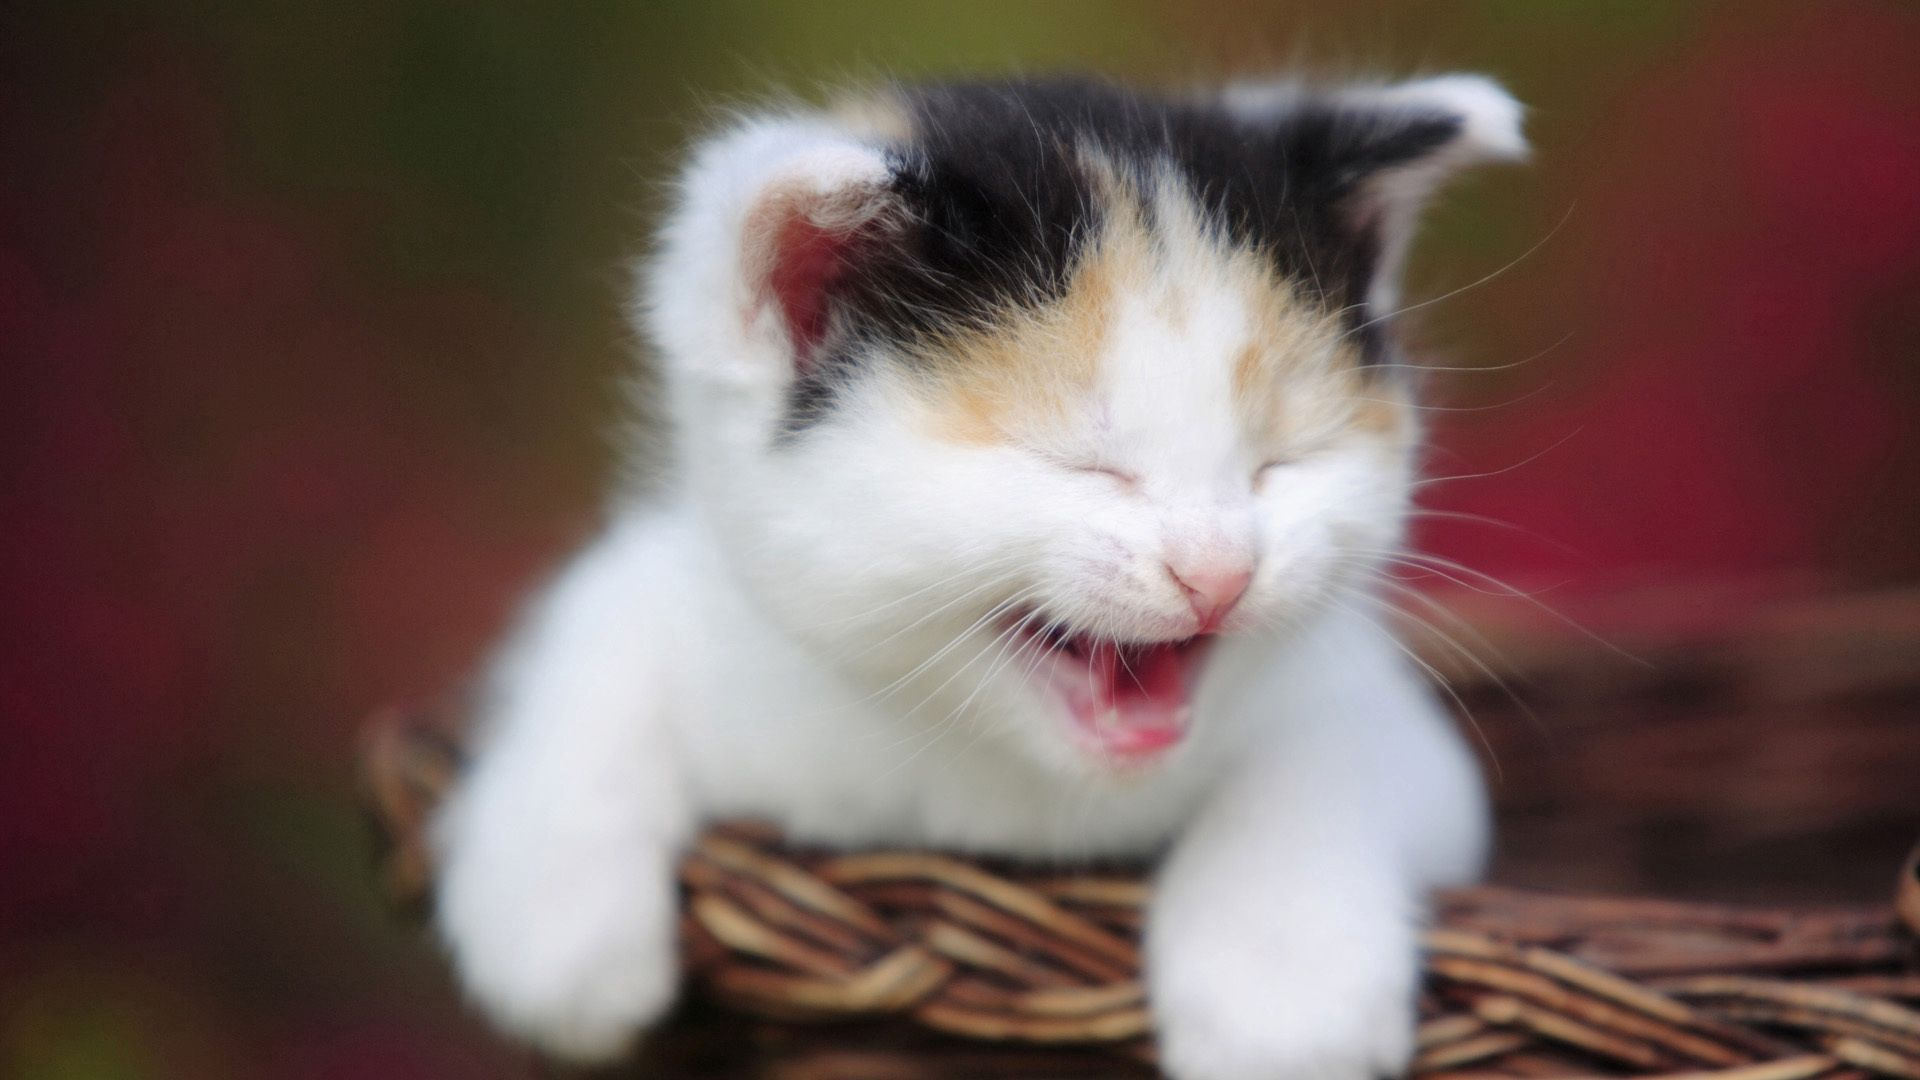 139901 download wallpaper Animals, Kitty, Kitten, Spotted, Spotty, Basket, Scream, Cry screensavers and pictures for free